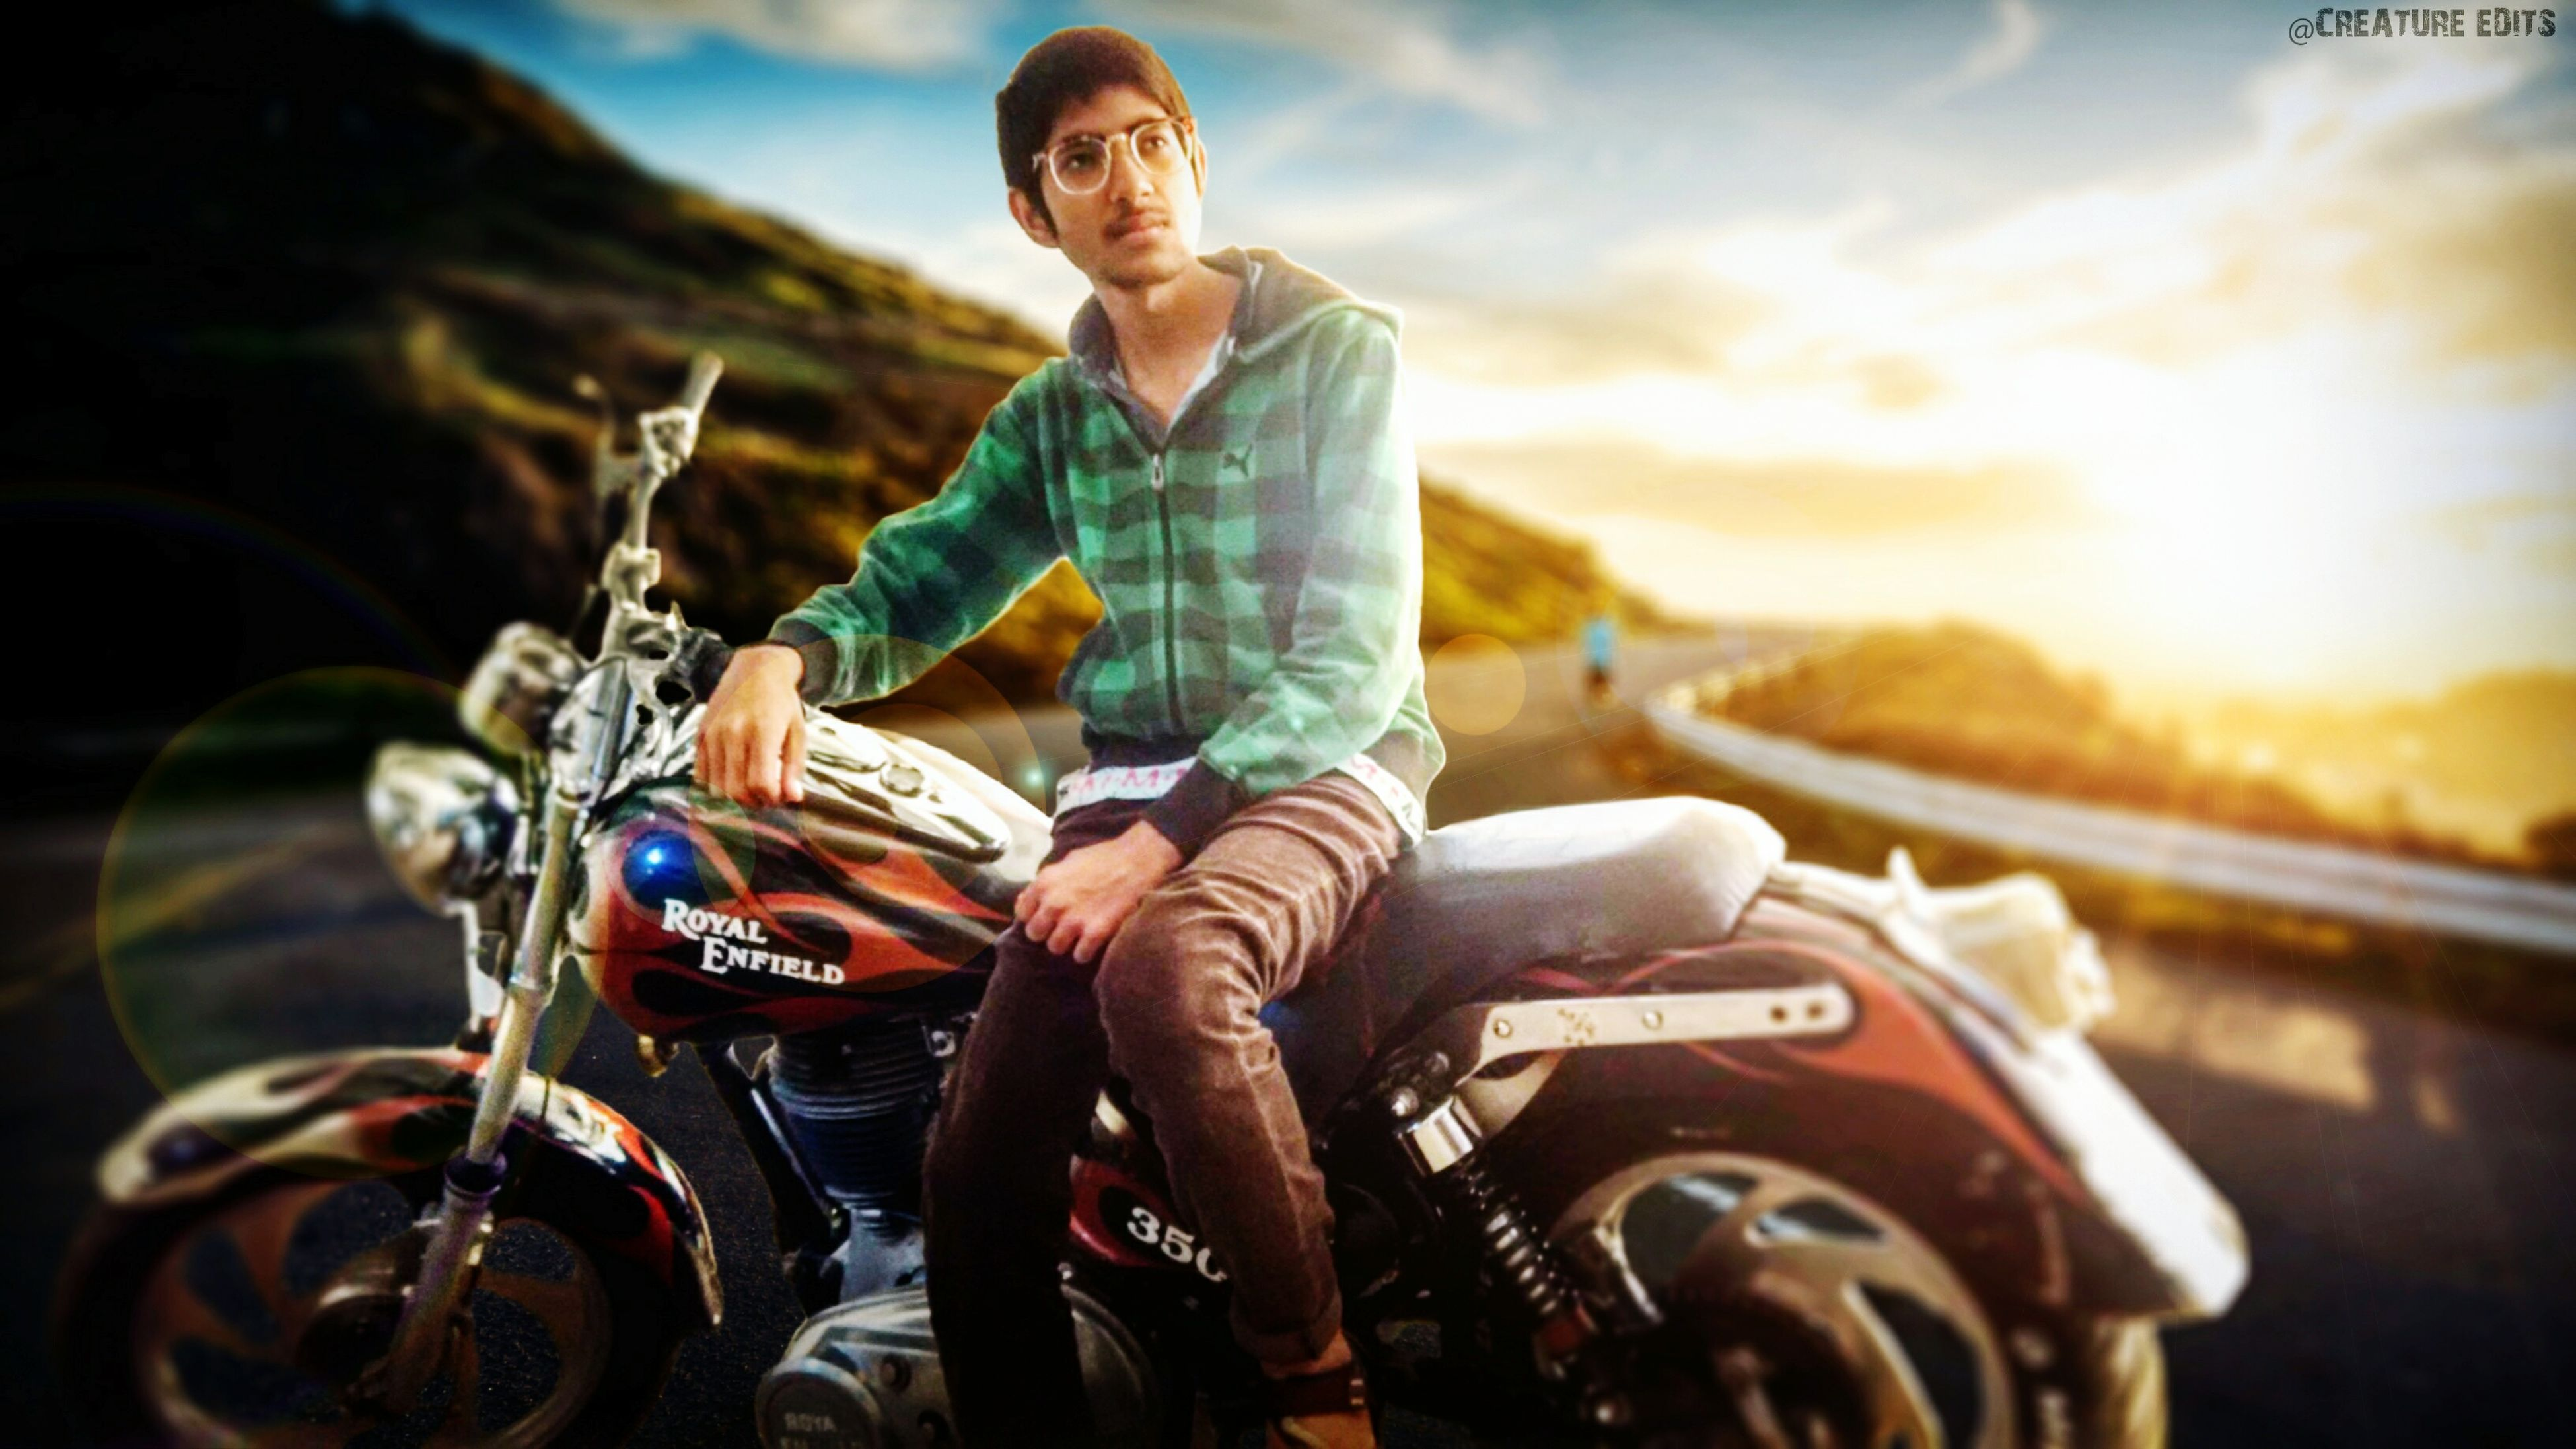 lifestyles, leisure activity, casual clothing, person, mode of transport, transportation, young adult, three quarter length, young men, full length, standing, land vehicle, front view, sky, side view, travel, sitting, bicycle